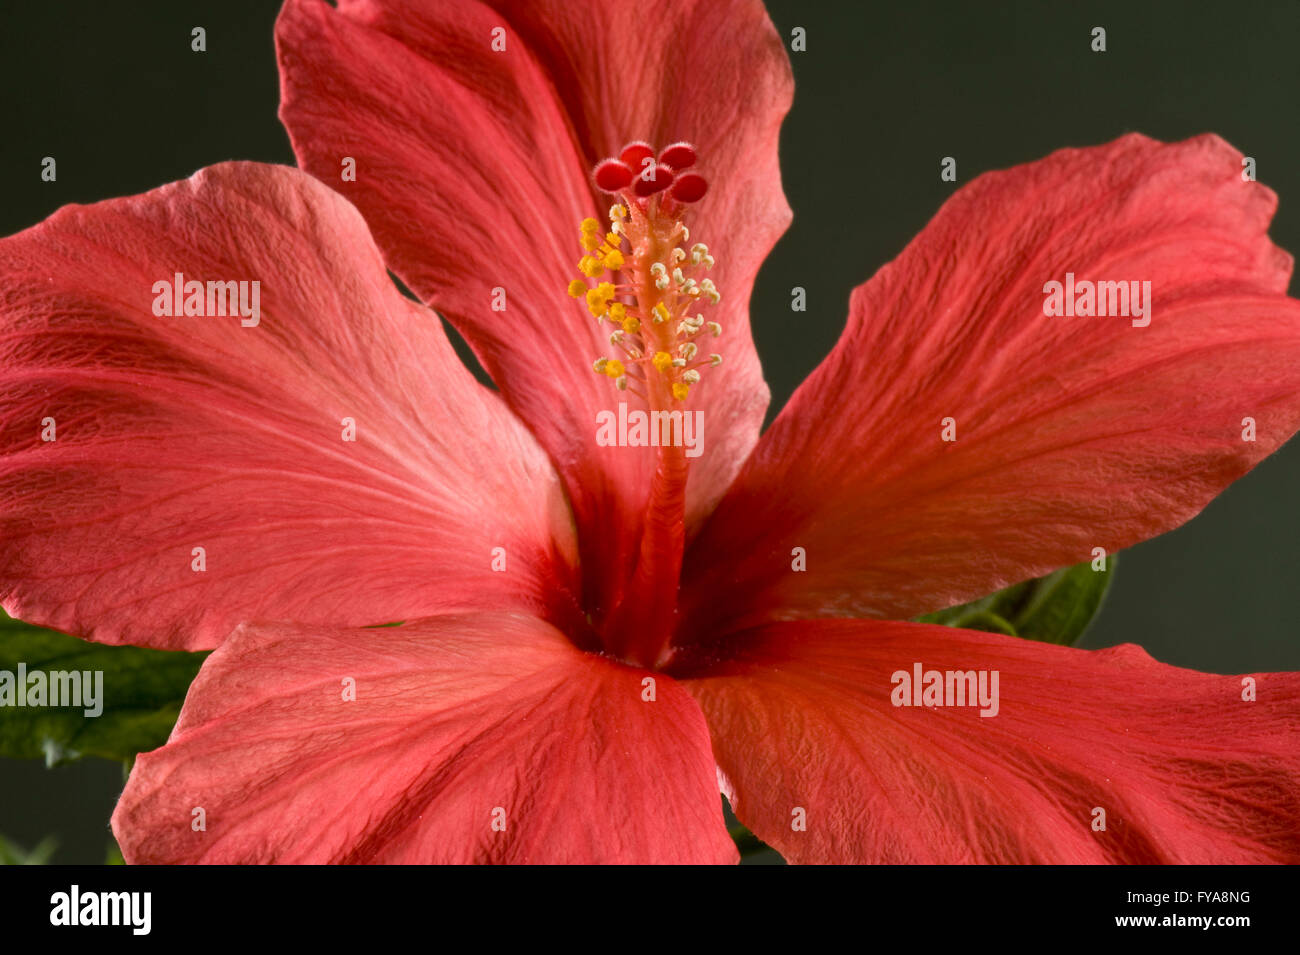 Red flower of an hibiscus house plant hibiscus rosa sinensis stock red flower of an hibiscus house plant hibiscus rosa sinensis showing stigma and anthers izmirmasajfo